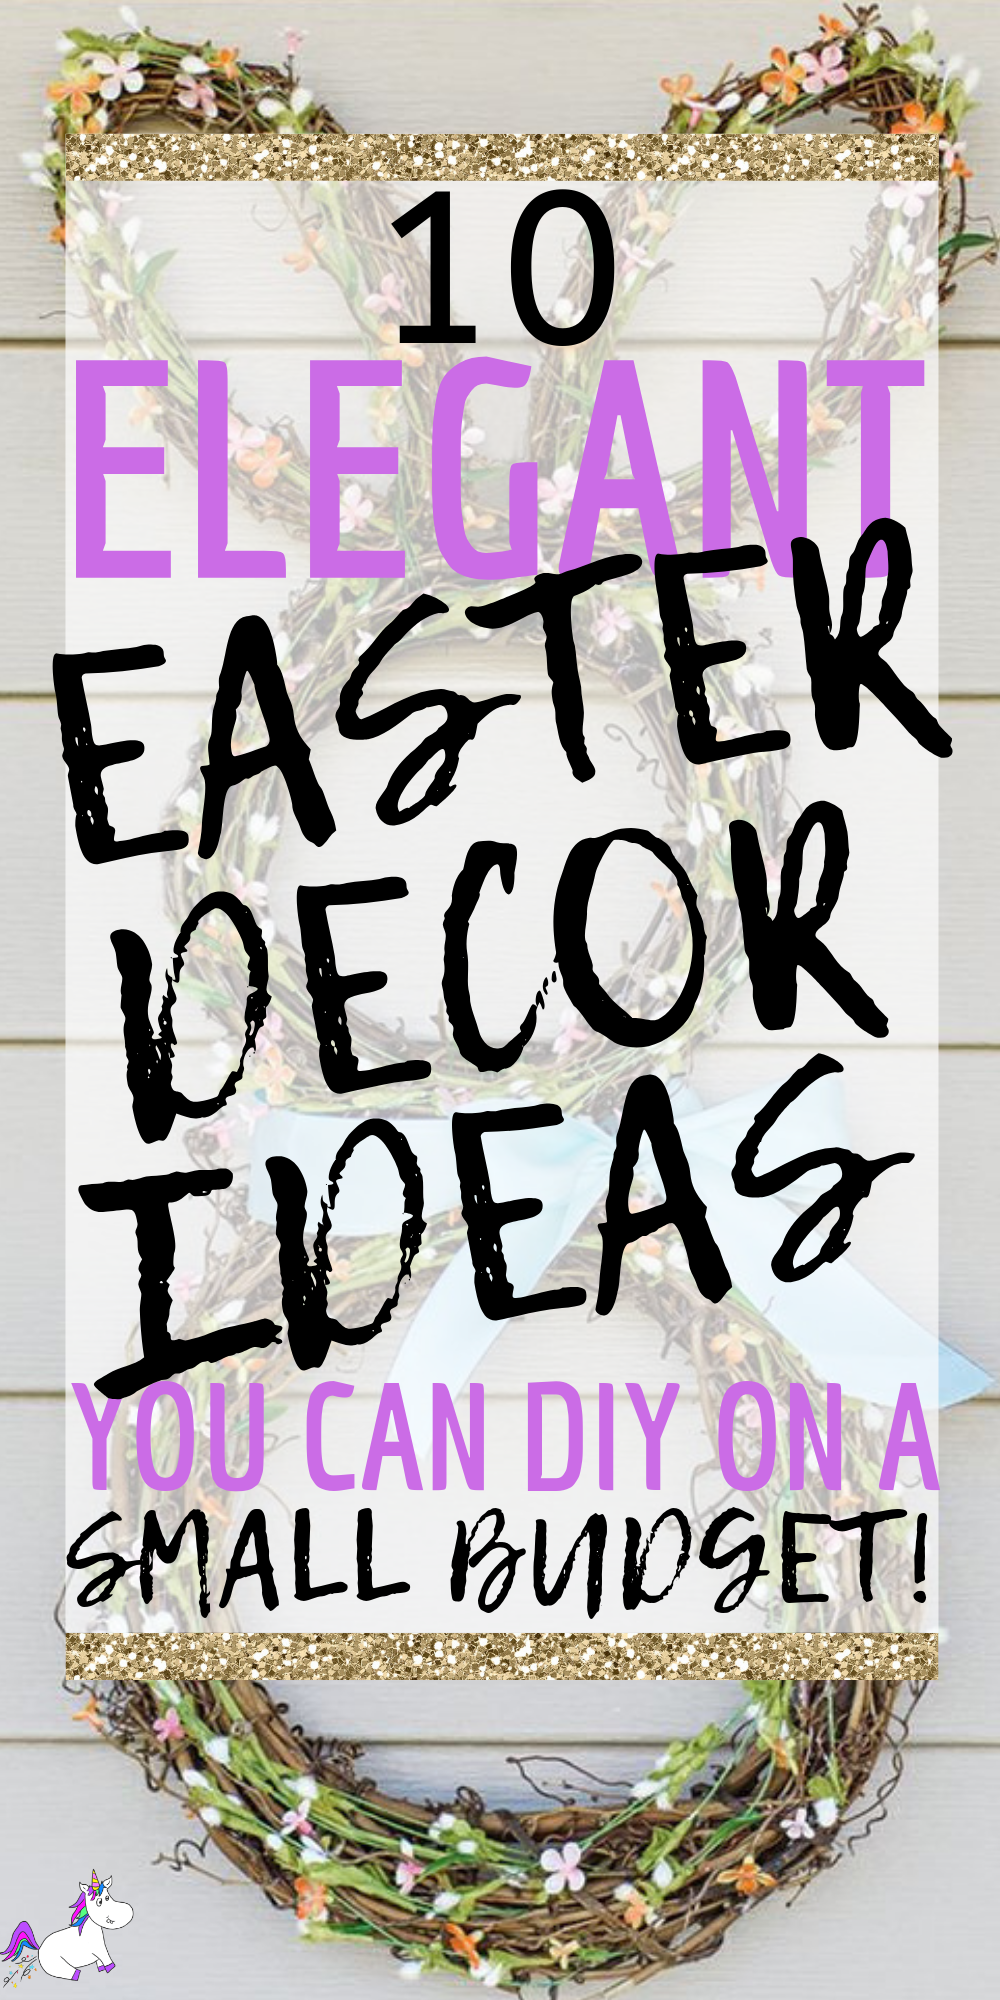 10 Stunning DIY Easter Decor Ideas You Can DIY On A Small Budget, If you're looking to decorate your home for Easter then give these easy Easter decorations You Can DIY this spring! #easterhomedecor #diyeasterdecor #springhomedecor #easterdiy #easterdecorations #easterdecor